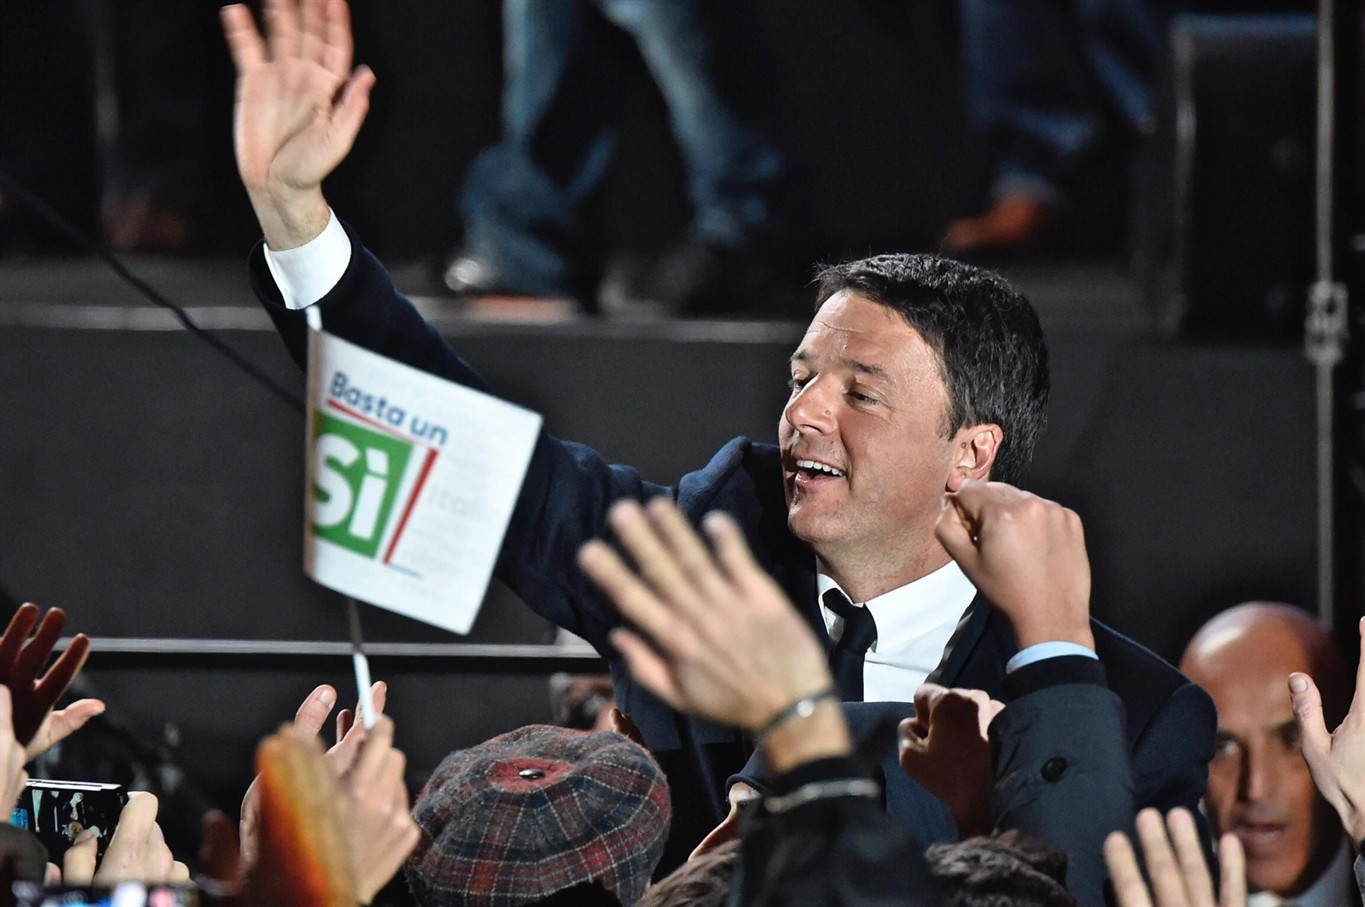 Renzi Heading for Defeat in Italy Referendum, Exit Polls Say